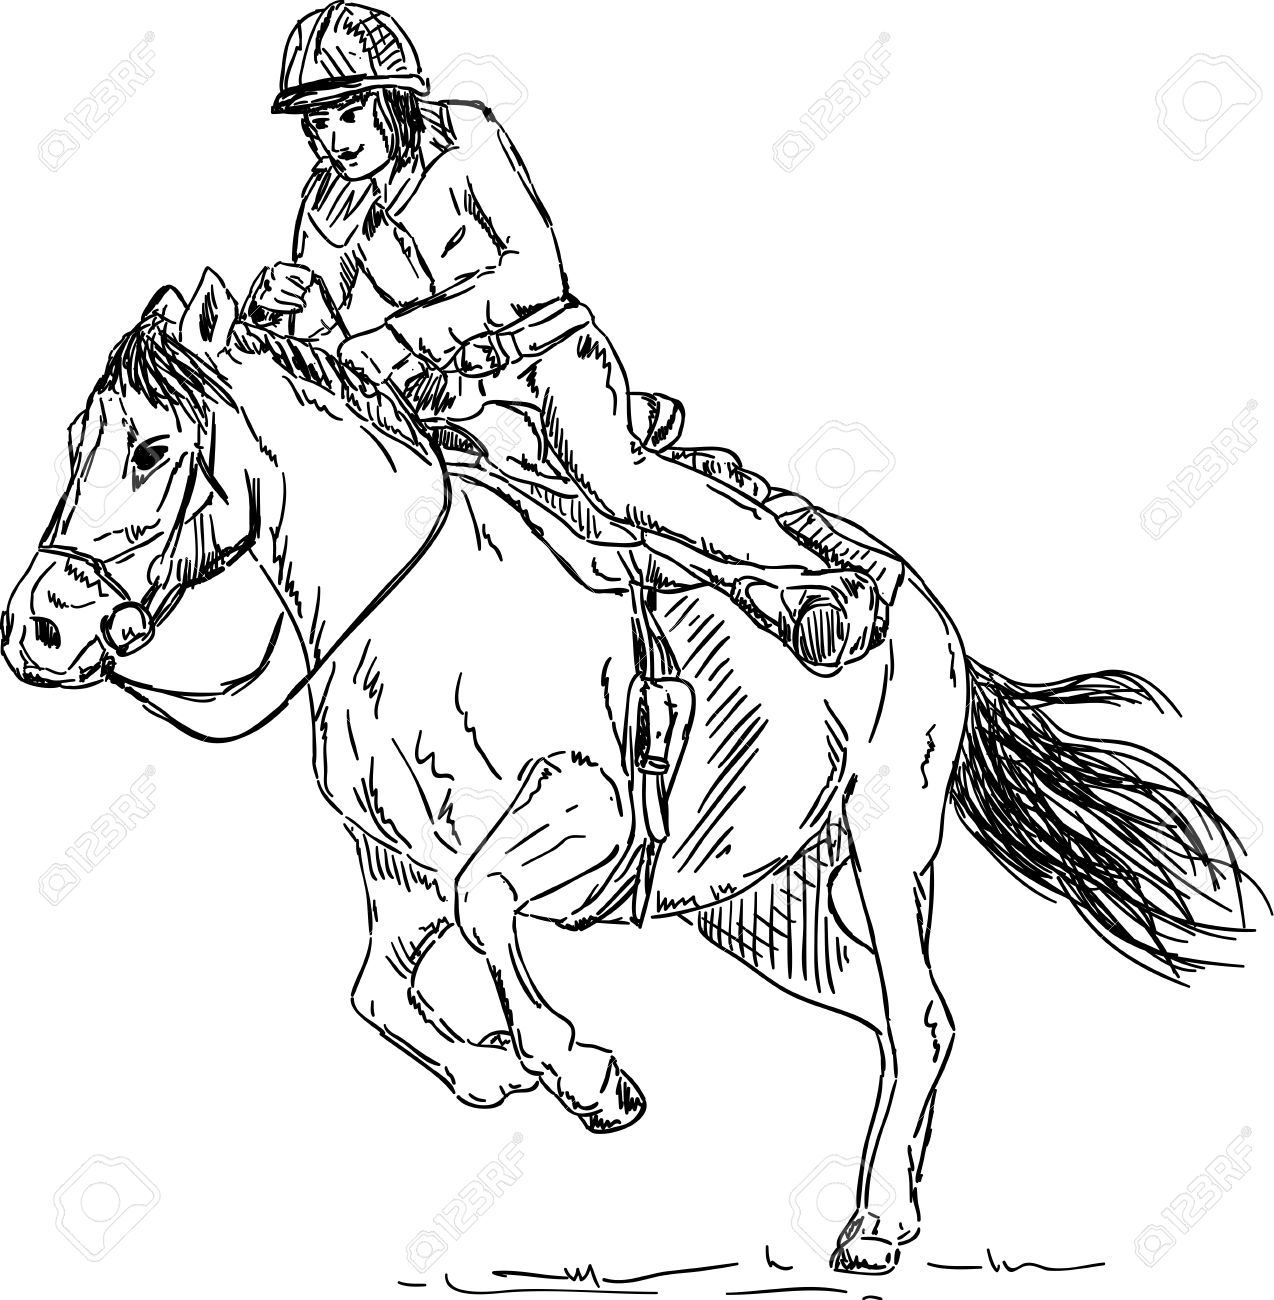 Cartoon Horse Jumping: Vector Girl Horse Rider Isolated On Background  Cartoon Horse Jumping Stock Photos How To Make